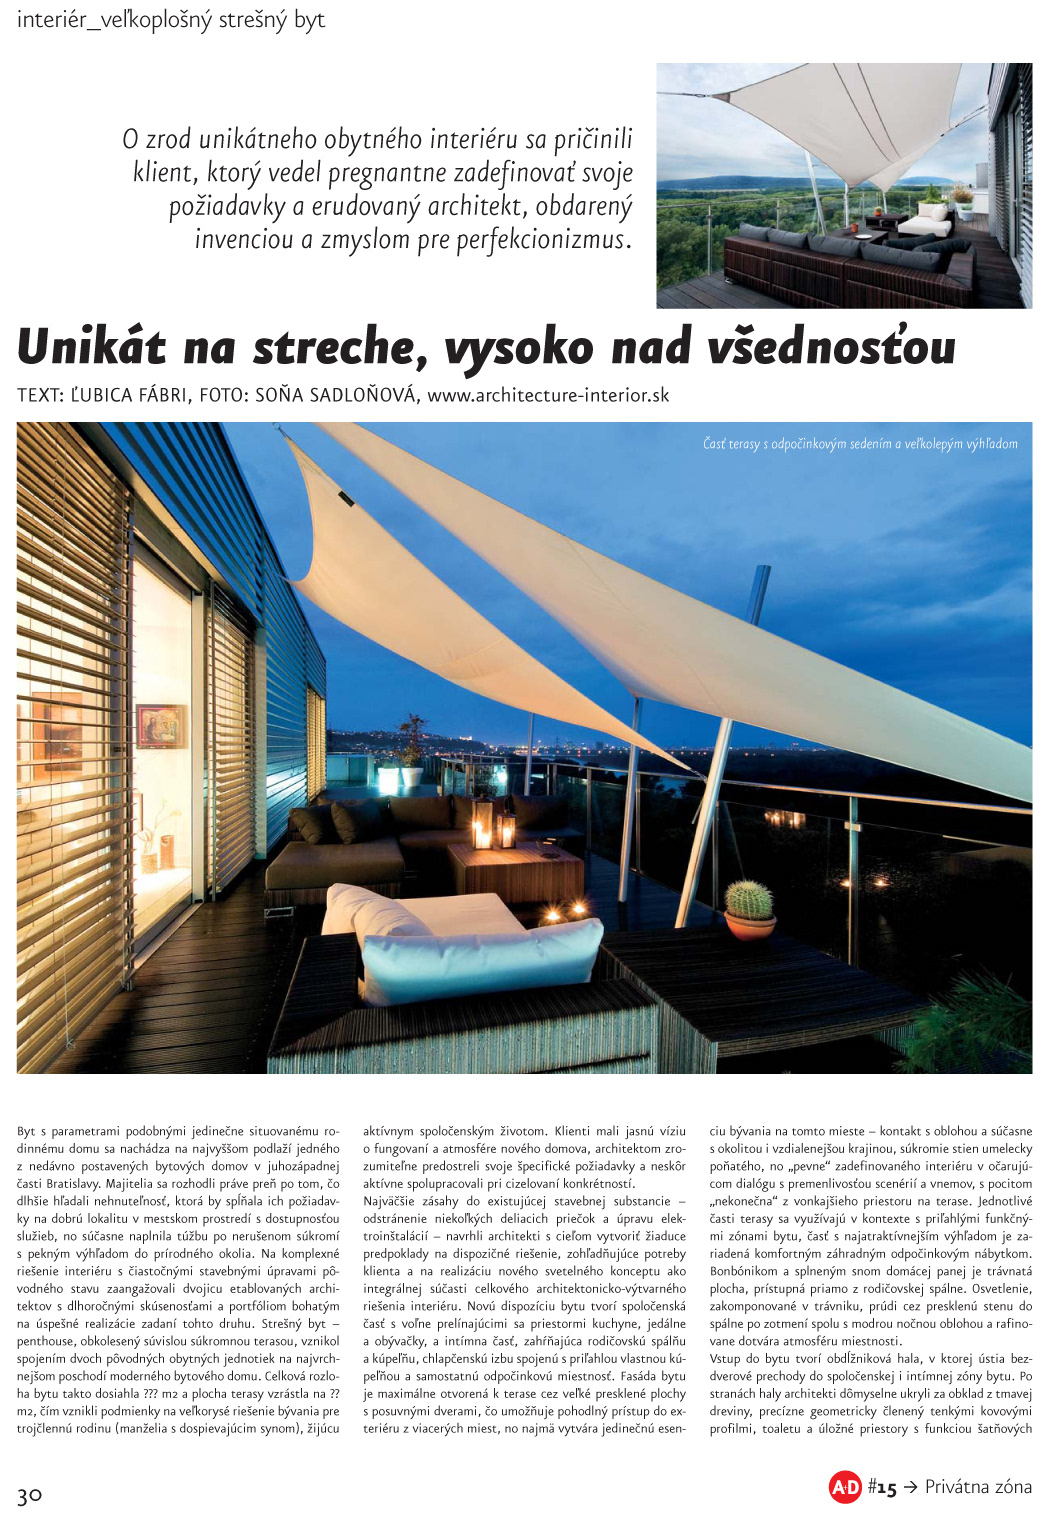 96d973850 Photographs published in many professional magazines and publication - for  instance ARCH, A+D magazine